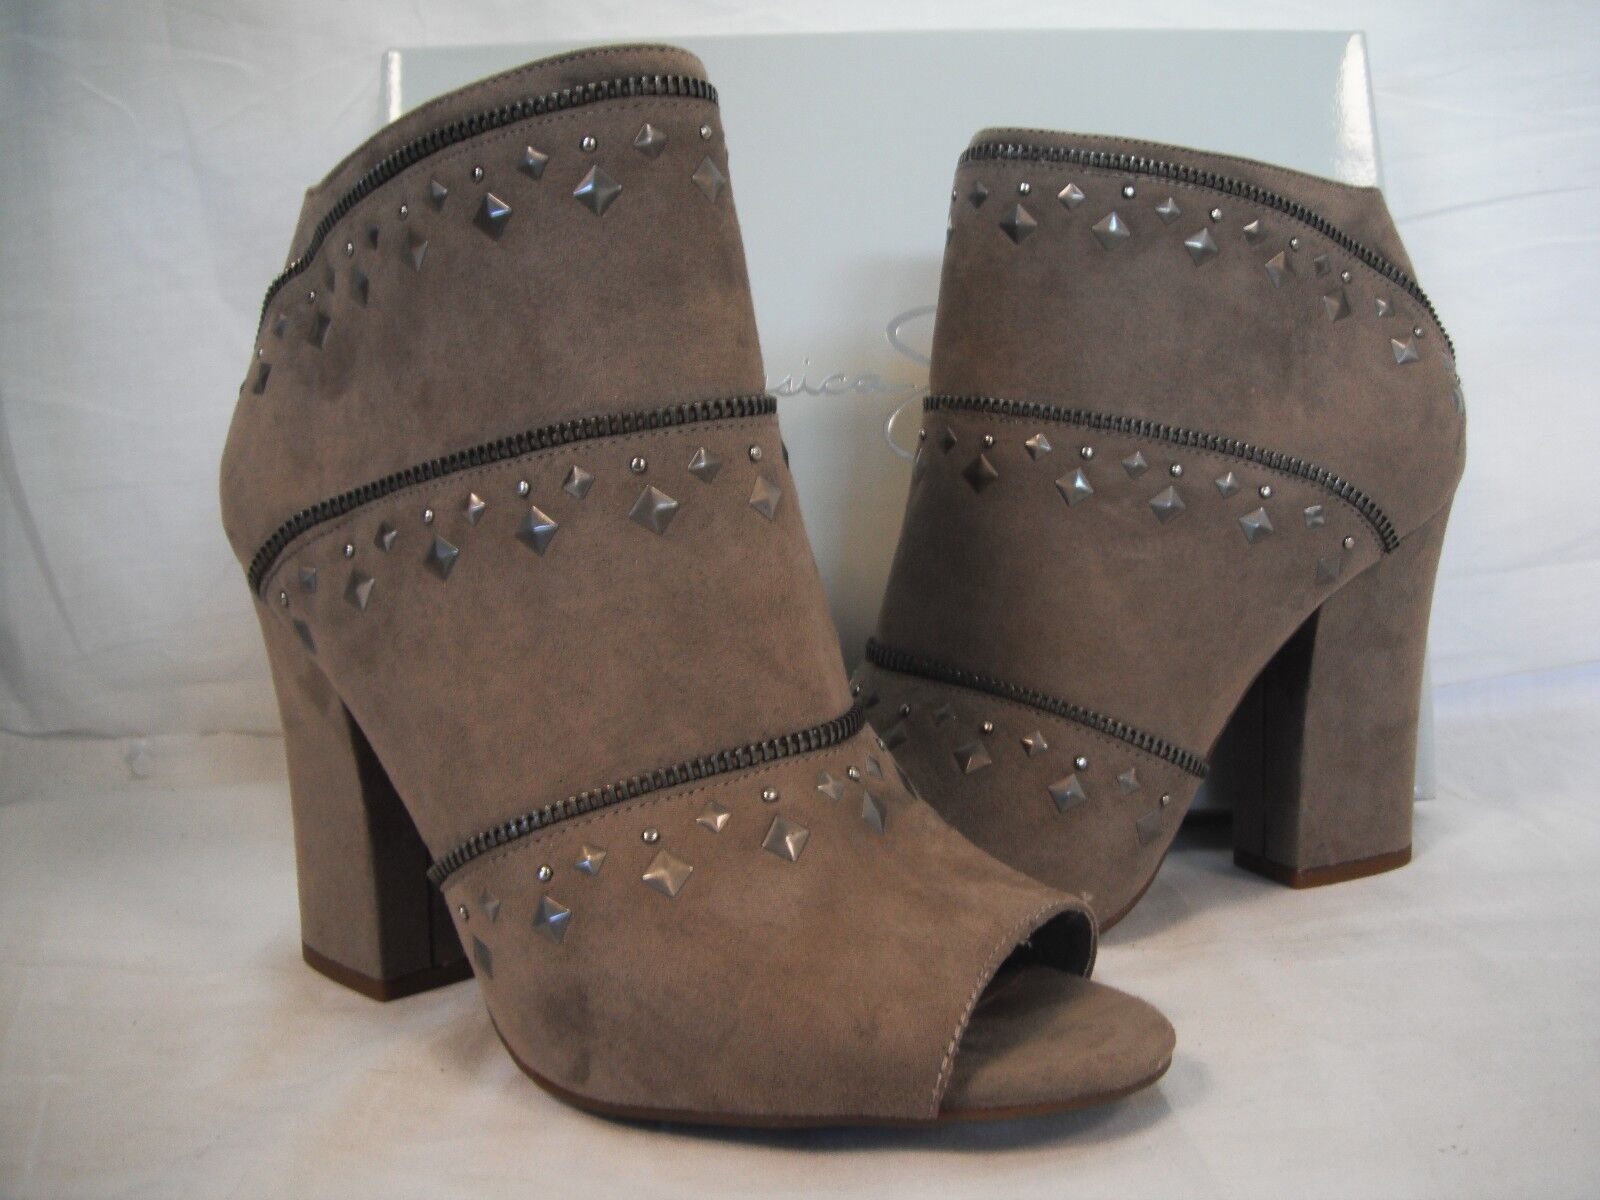 Jessica Simpson Größe 9 M Midara Taupe Ankle Ankle Ankle Booties New Damenschuhe Schuhes f8a863